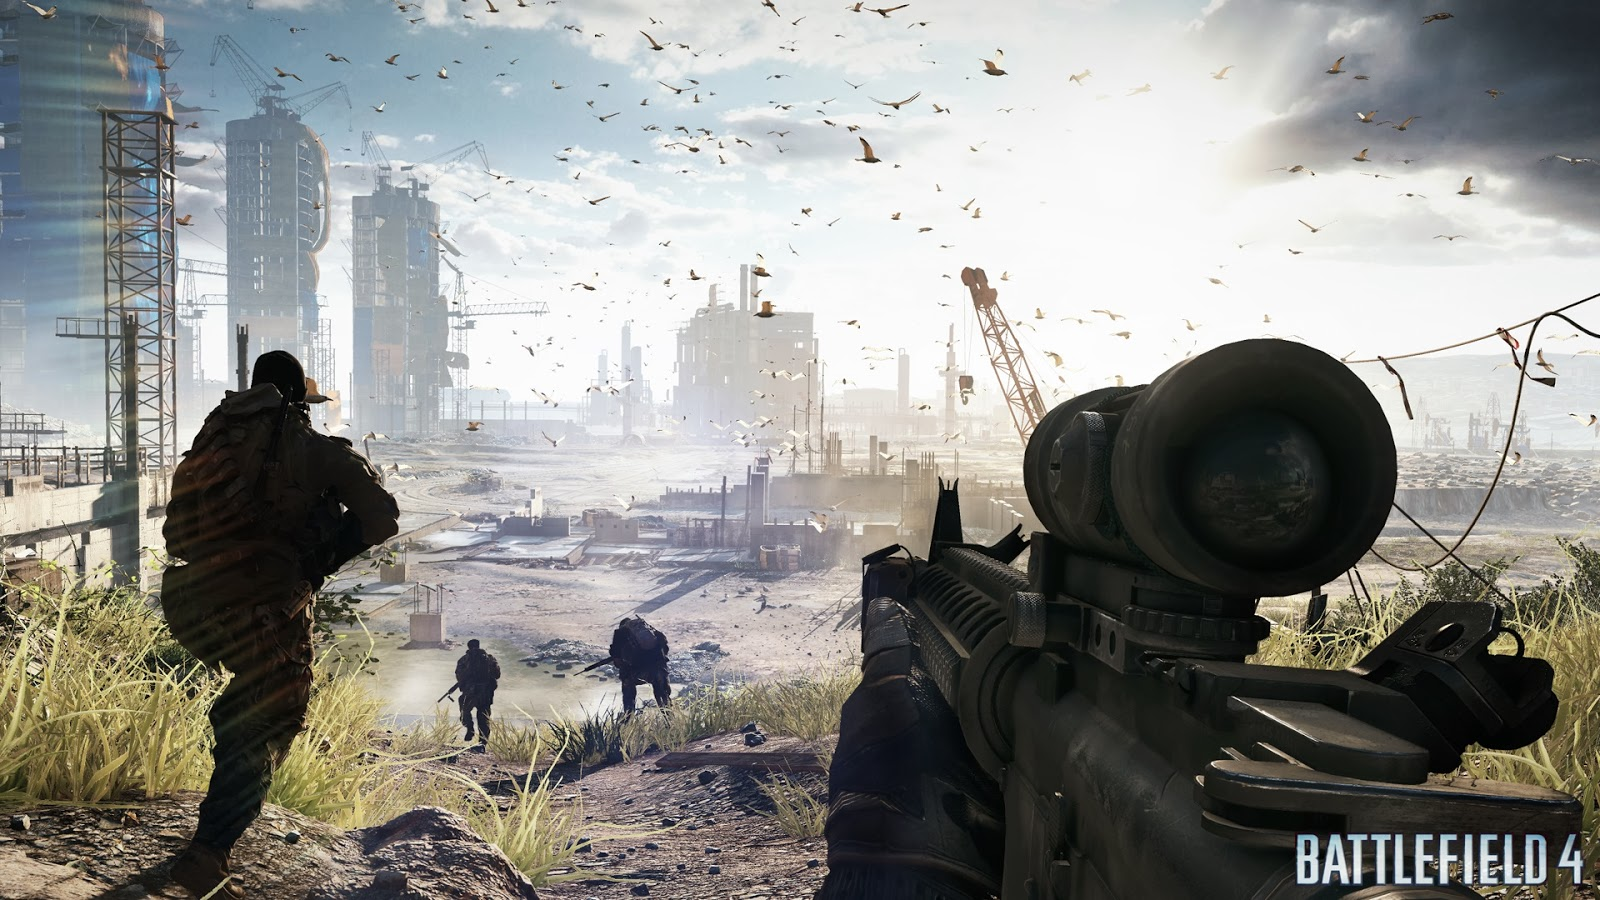 BattleField 4 Full Game